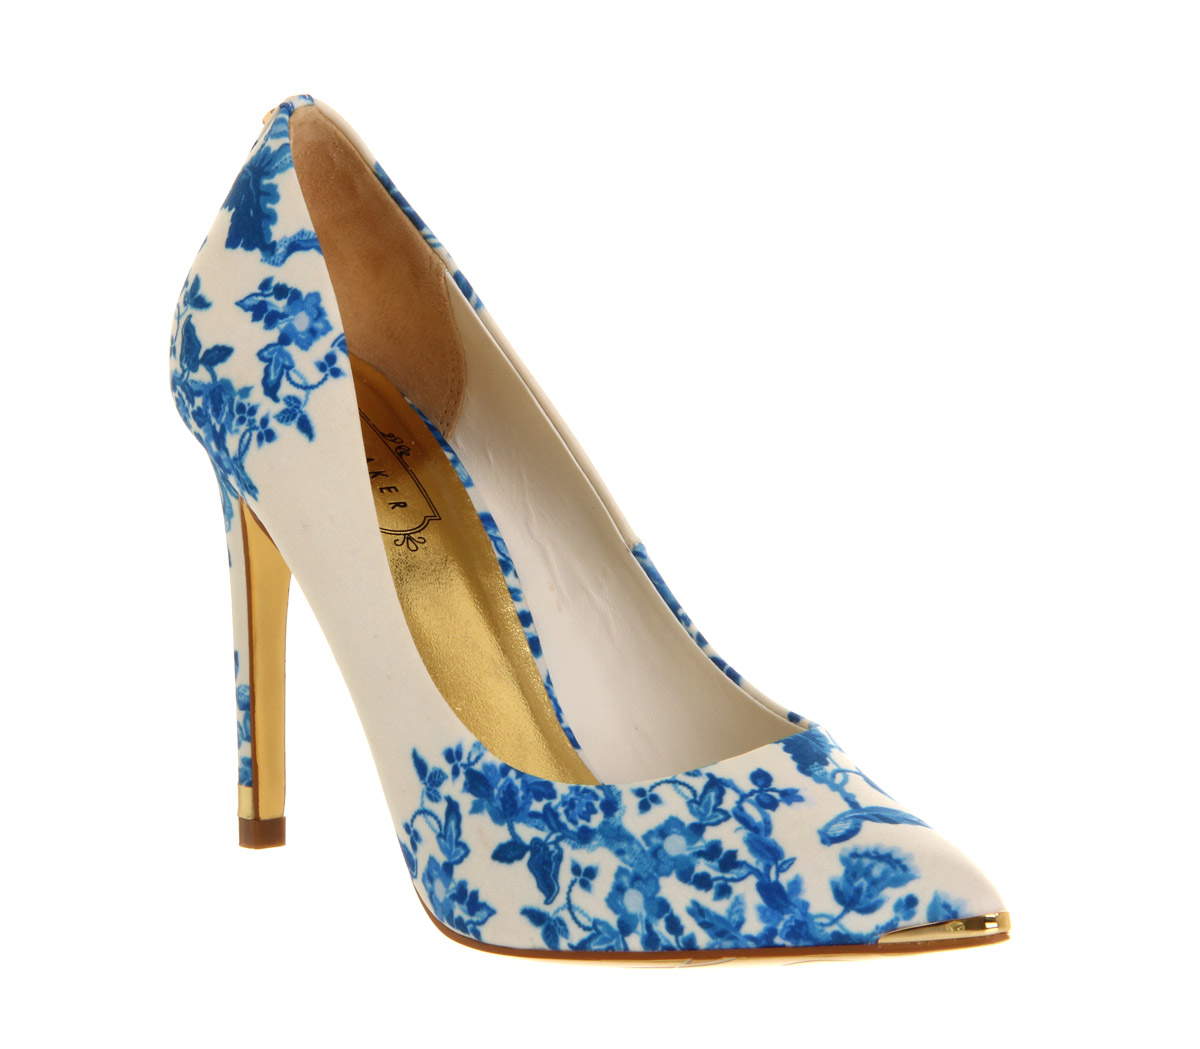 Blue And White High Heels 5BqbRijL